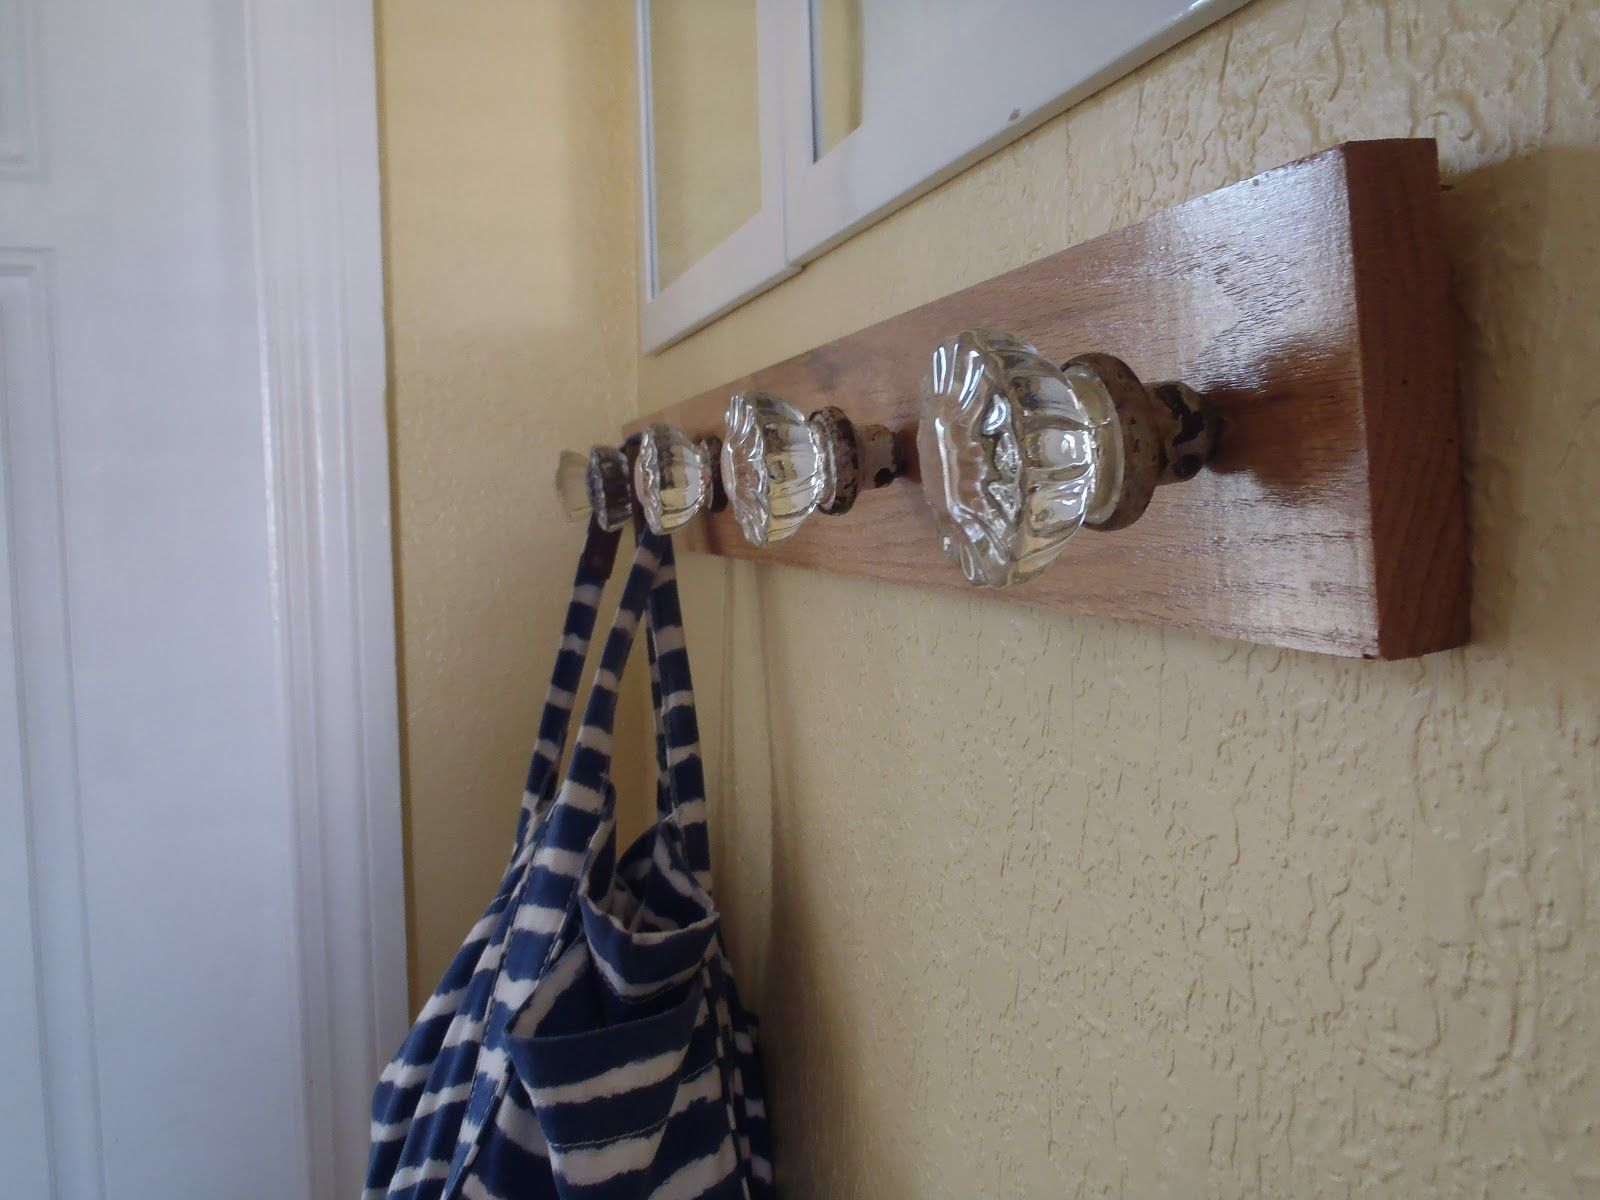 Door Knob Coat Rack   Jay Canu0027t Stand Things Hanging On Active Doorknobs,  So It Would Be Funny To Have A Rack Of Doorknobs You Are Actually Supposeu2026